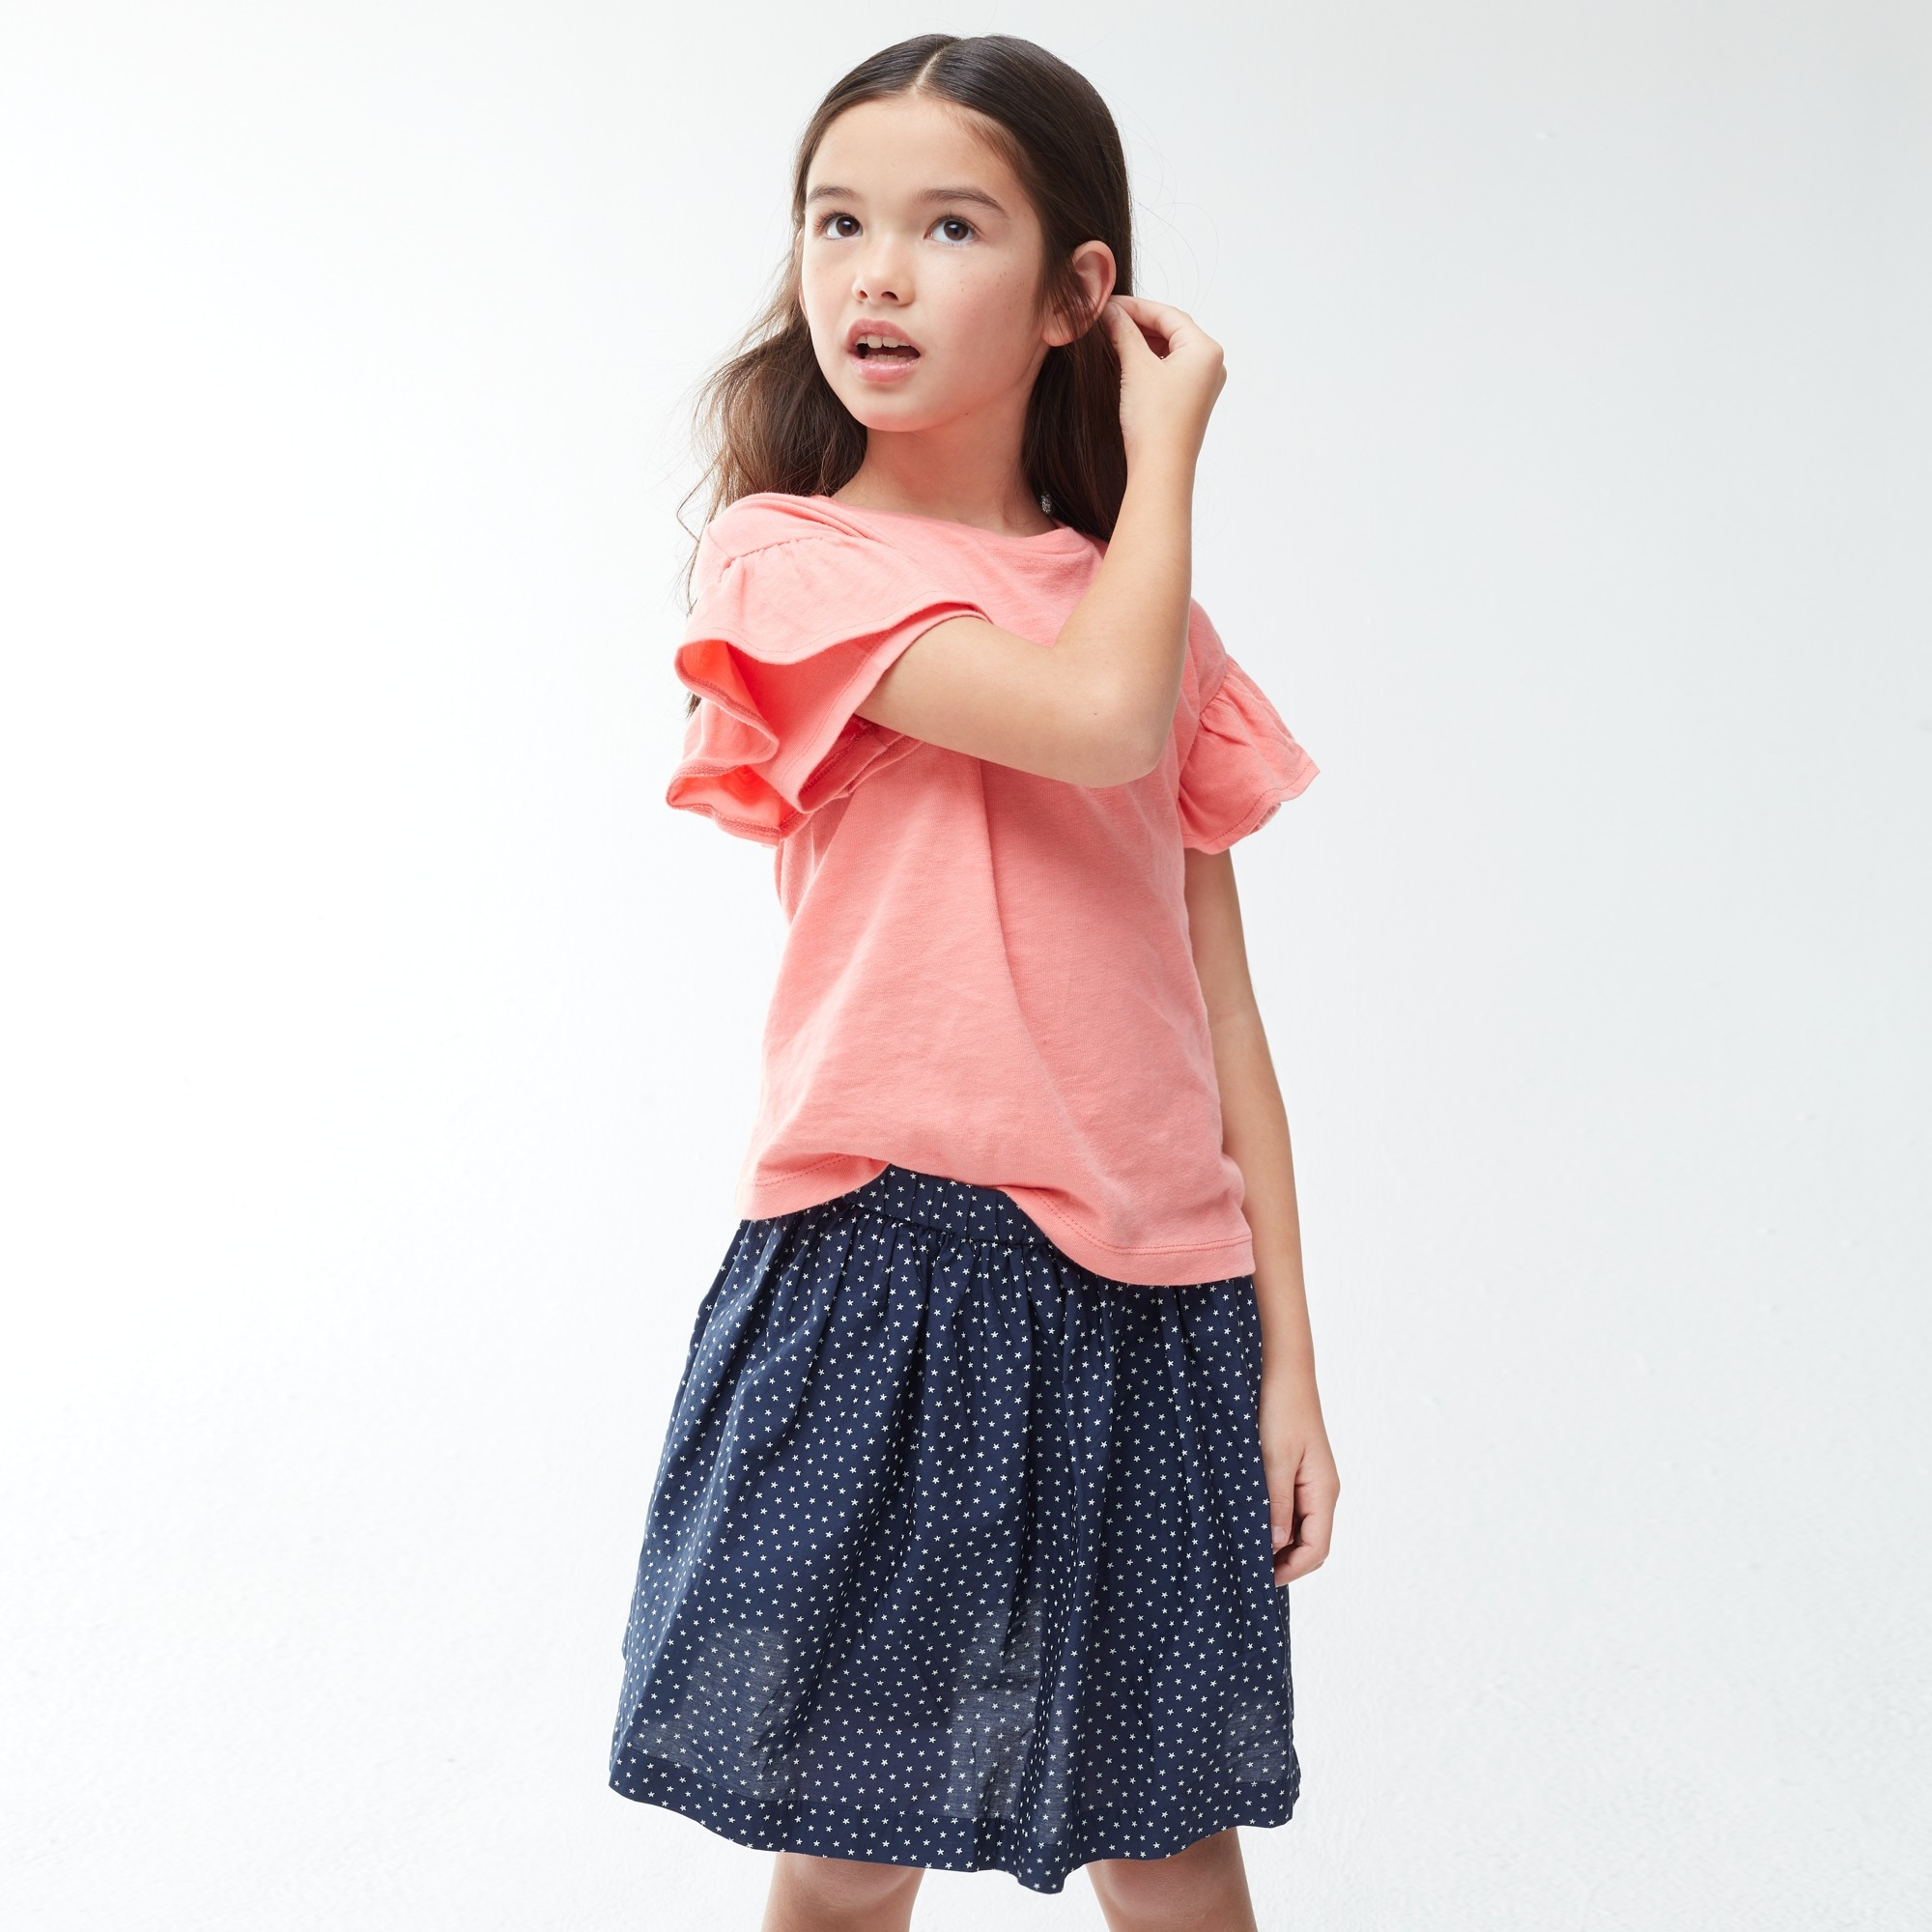 Girls' pull-on skirt in tiny stars girl new arrivals c